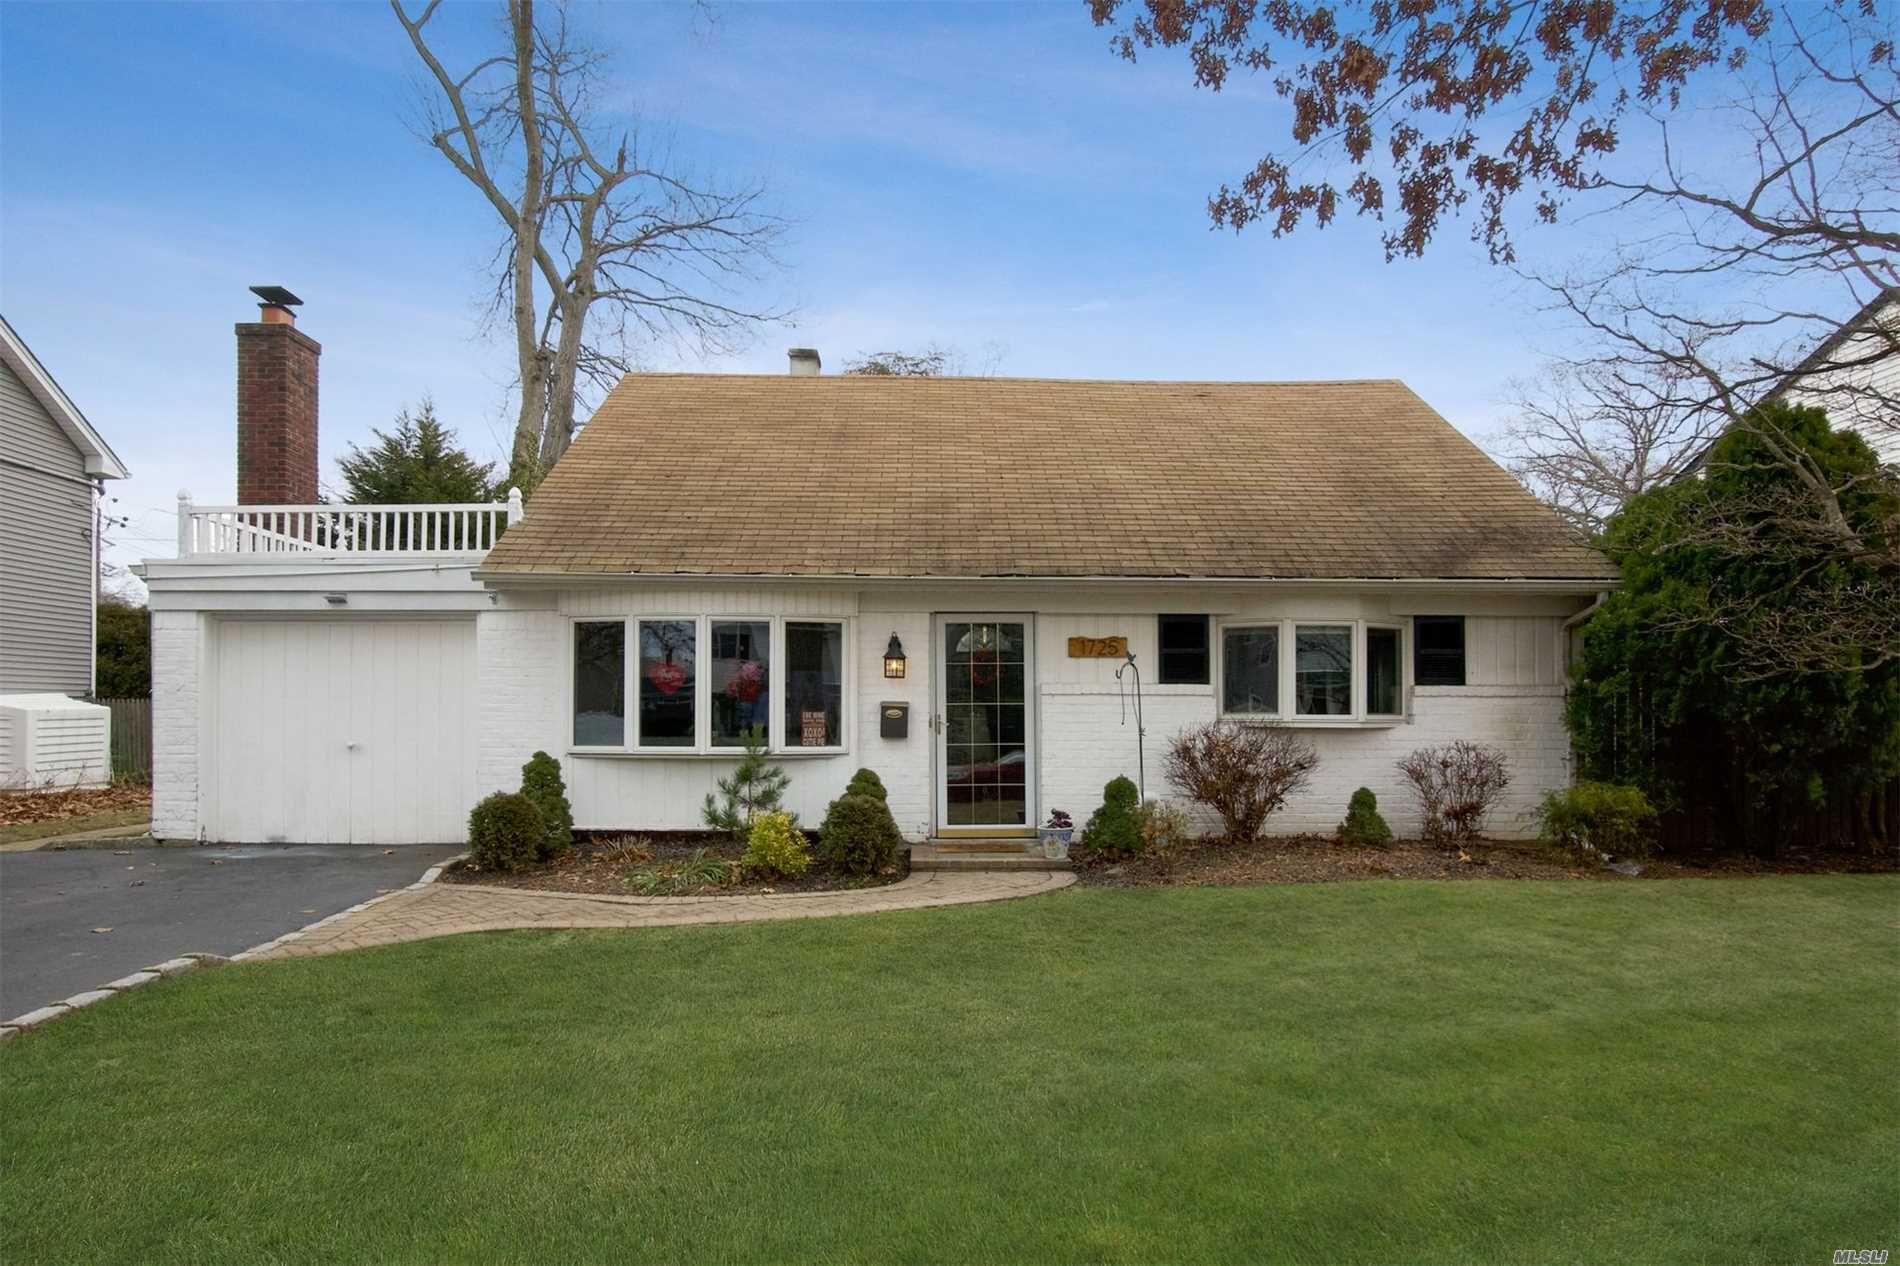 Wantagh Woods- Blue Ribbon School District-Super Low Taxes, Expanded Cape Located On A Tree Lined Block. Features Four Bedrooms, 2 Full Baths, Rear Dormer, Fireplace, Updated Heating, Kitchen, And Bathrooms. Extended Living Room & Extended Dining Room, Close To Rail. Taxes W Star Only $8585.86.